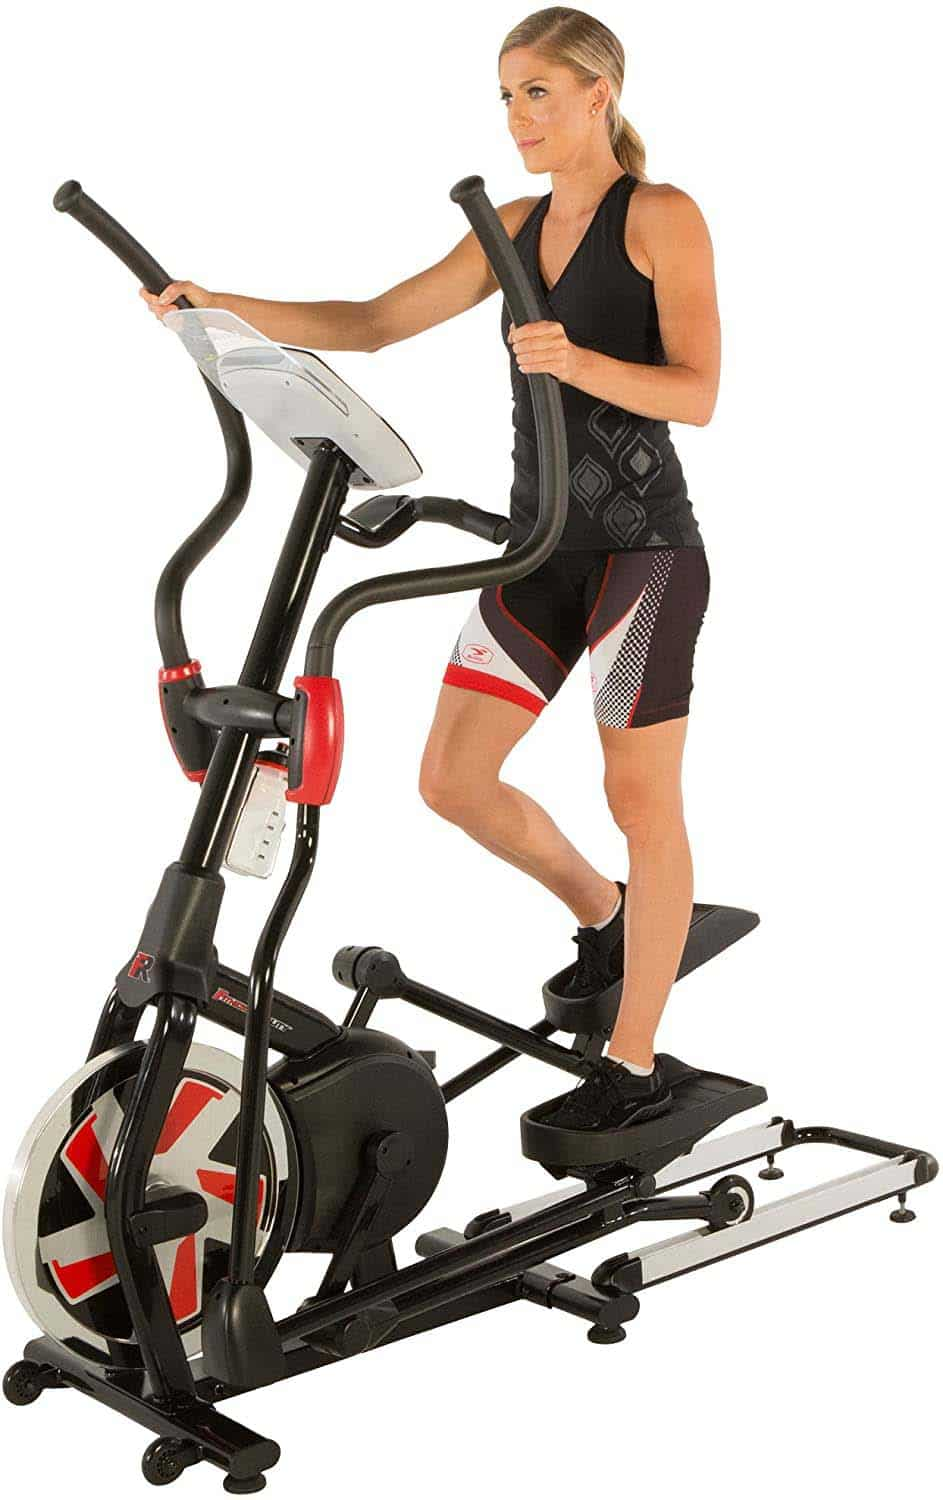 crosstrainer reviews